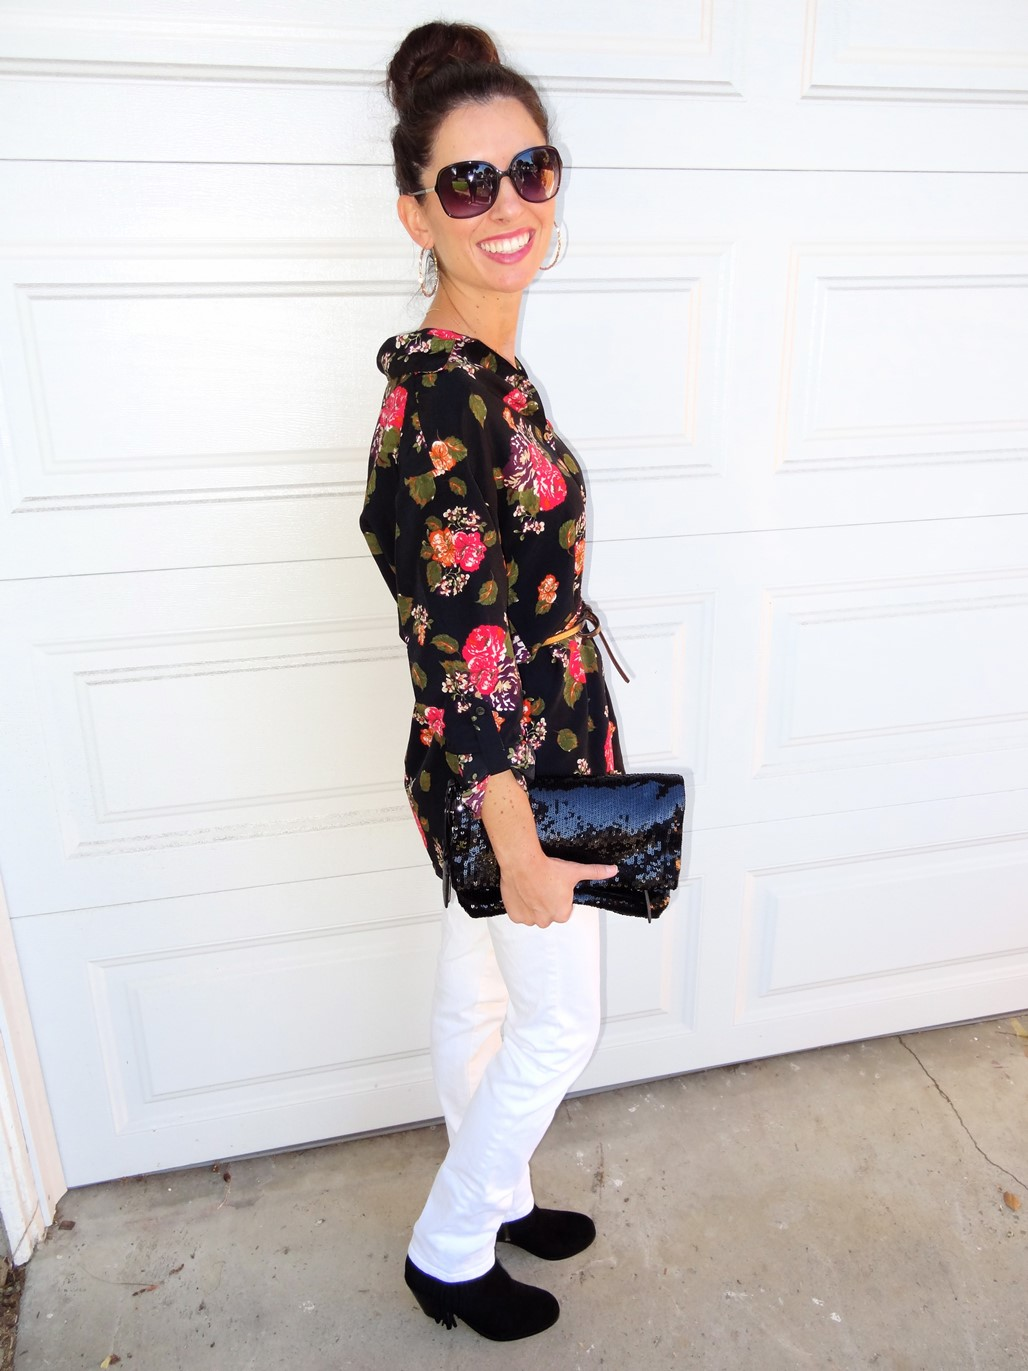 4. Wear of the Week White Pants and Floral